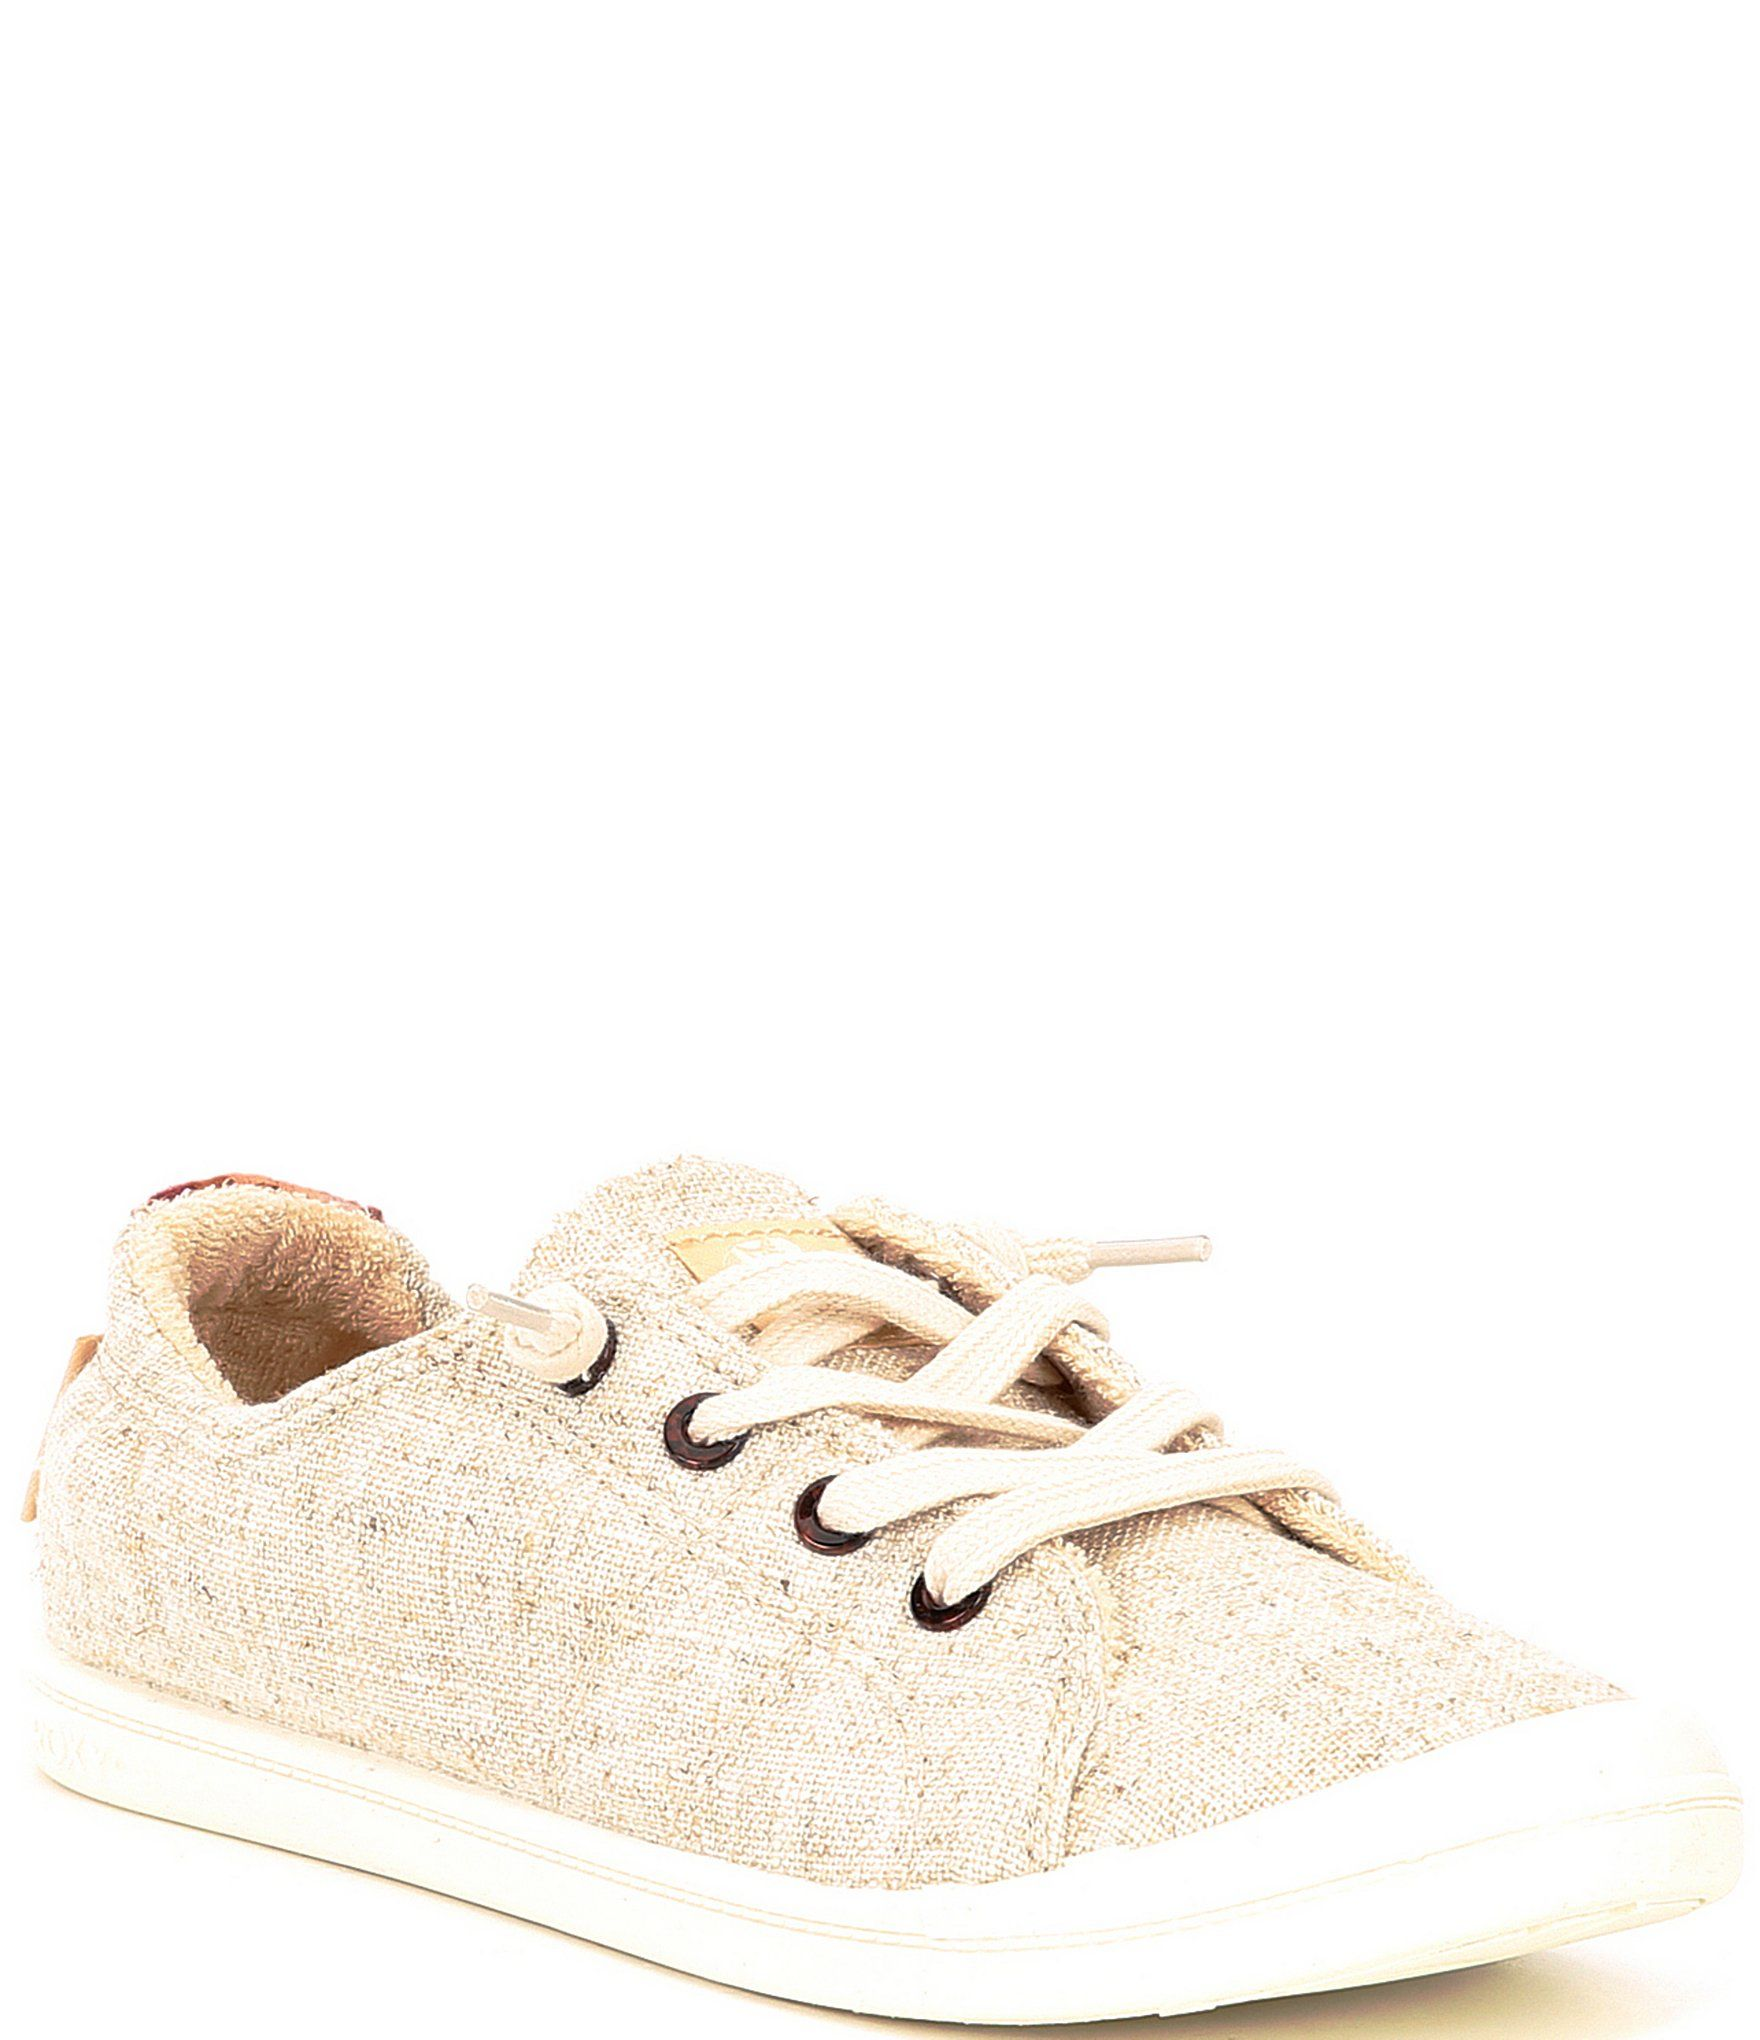 From Roxy, the Bayshore III Slip-On Sneakers feature:Canvas upperSlip on design with knotted laces for a custom fitMolded arch detailMemory foam padded insoleFabric liningRubber outsoleFlat heelImported.